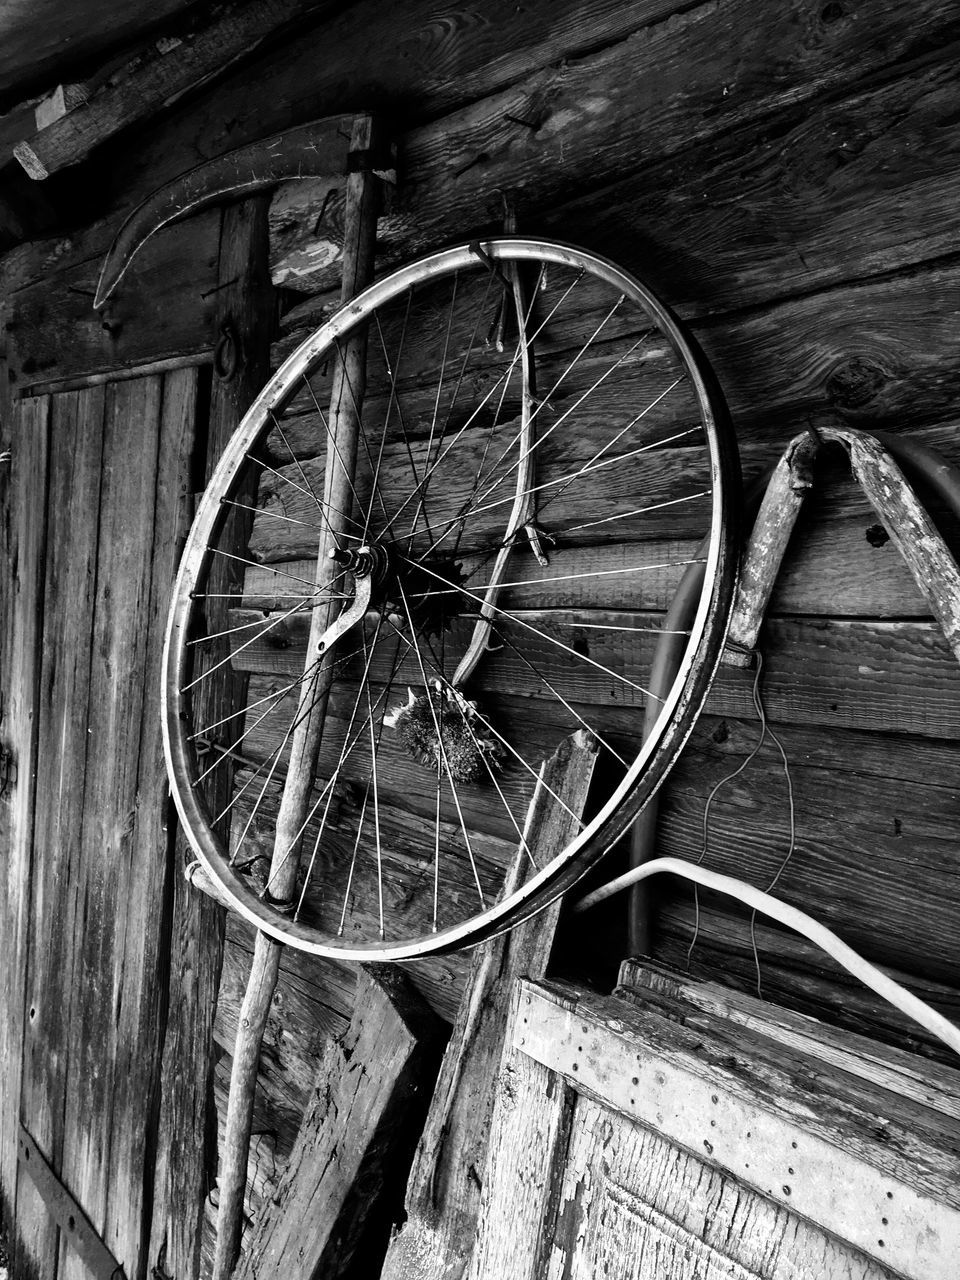 wood - material, no people, abandoned, day, wheel, outdoors, wagon wheel, spoke, close-up